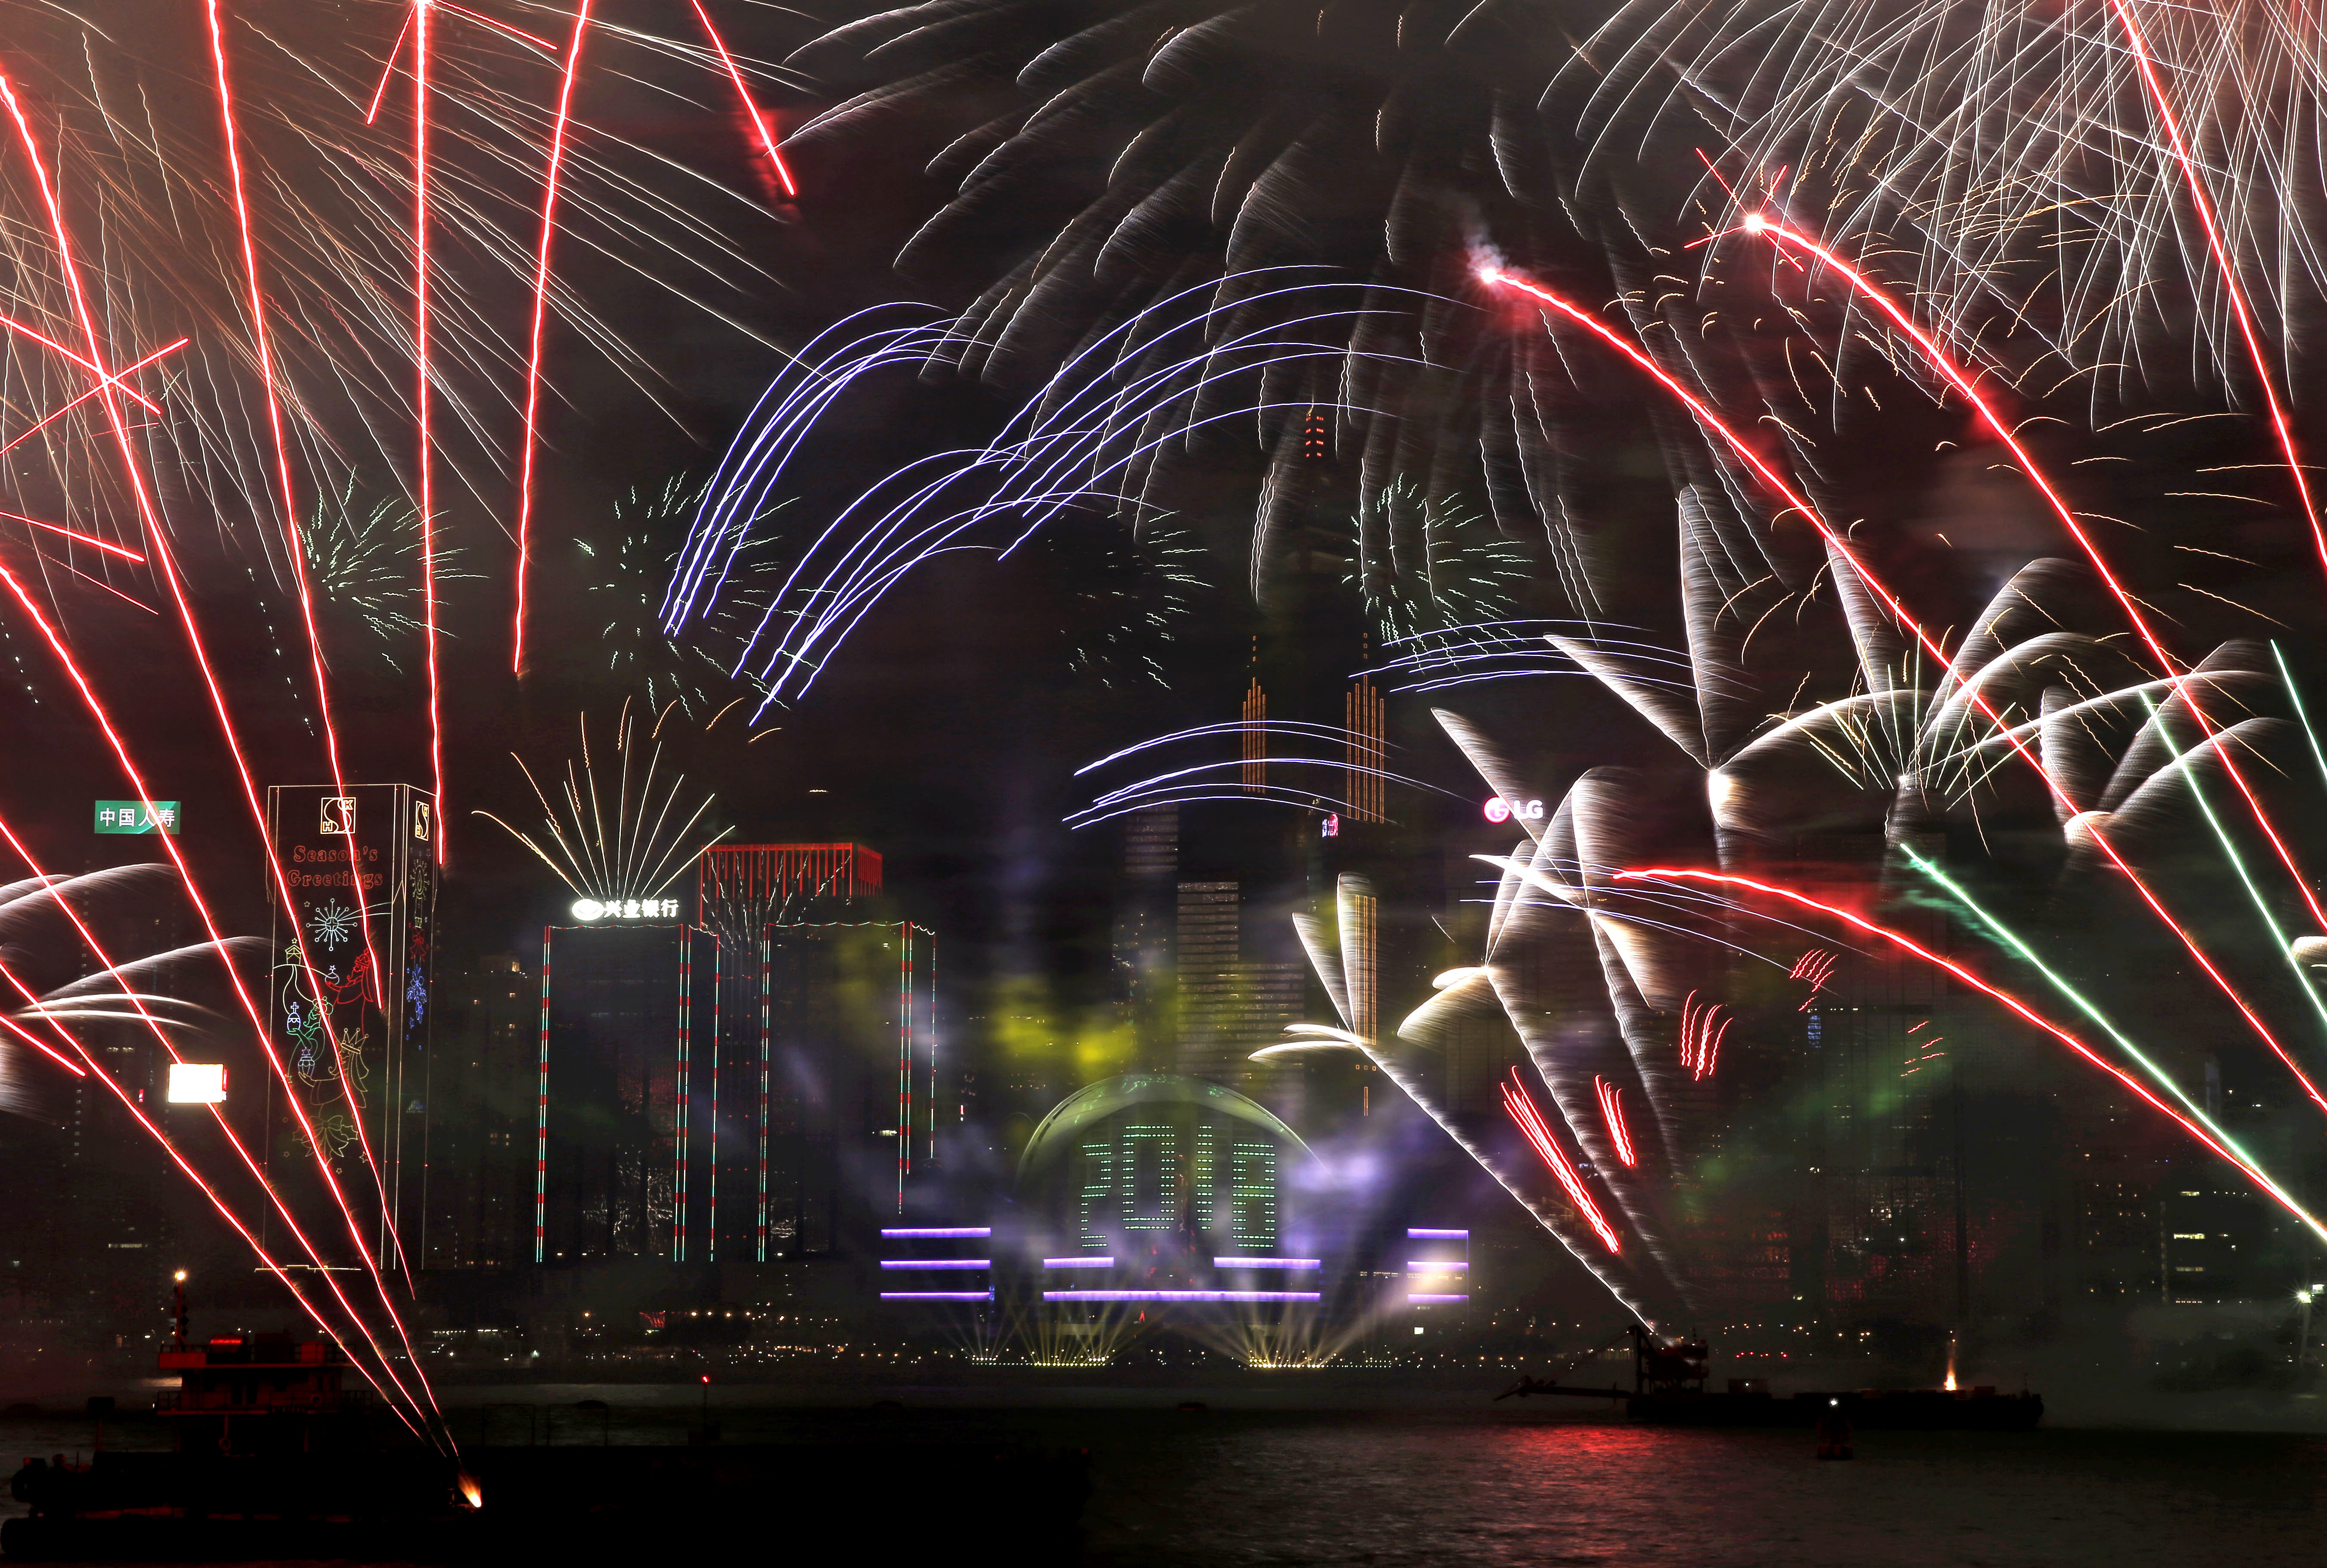 <div class='meta'><div class='origin-logo' data-origin='AP'></div><span class='caption-text' data-credit='AP'>Fireworks explode over the Victoria Harbor during New Year's Eve to celebrate the start of year 2018 in Hong Kong, Monday, Jan. 1, 2018. (AP Photo/Kin Cheung)</span></div>